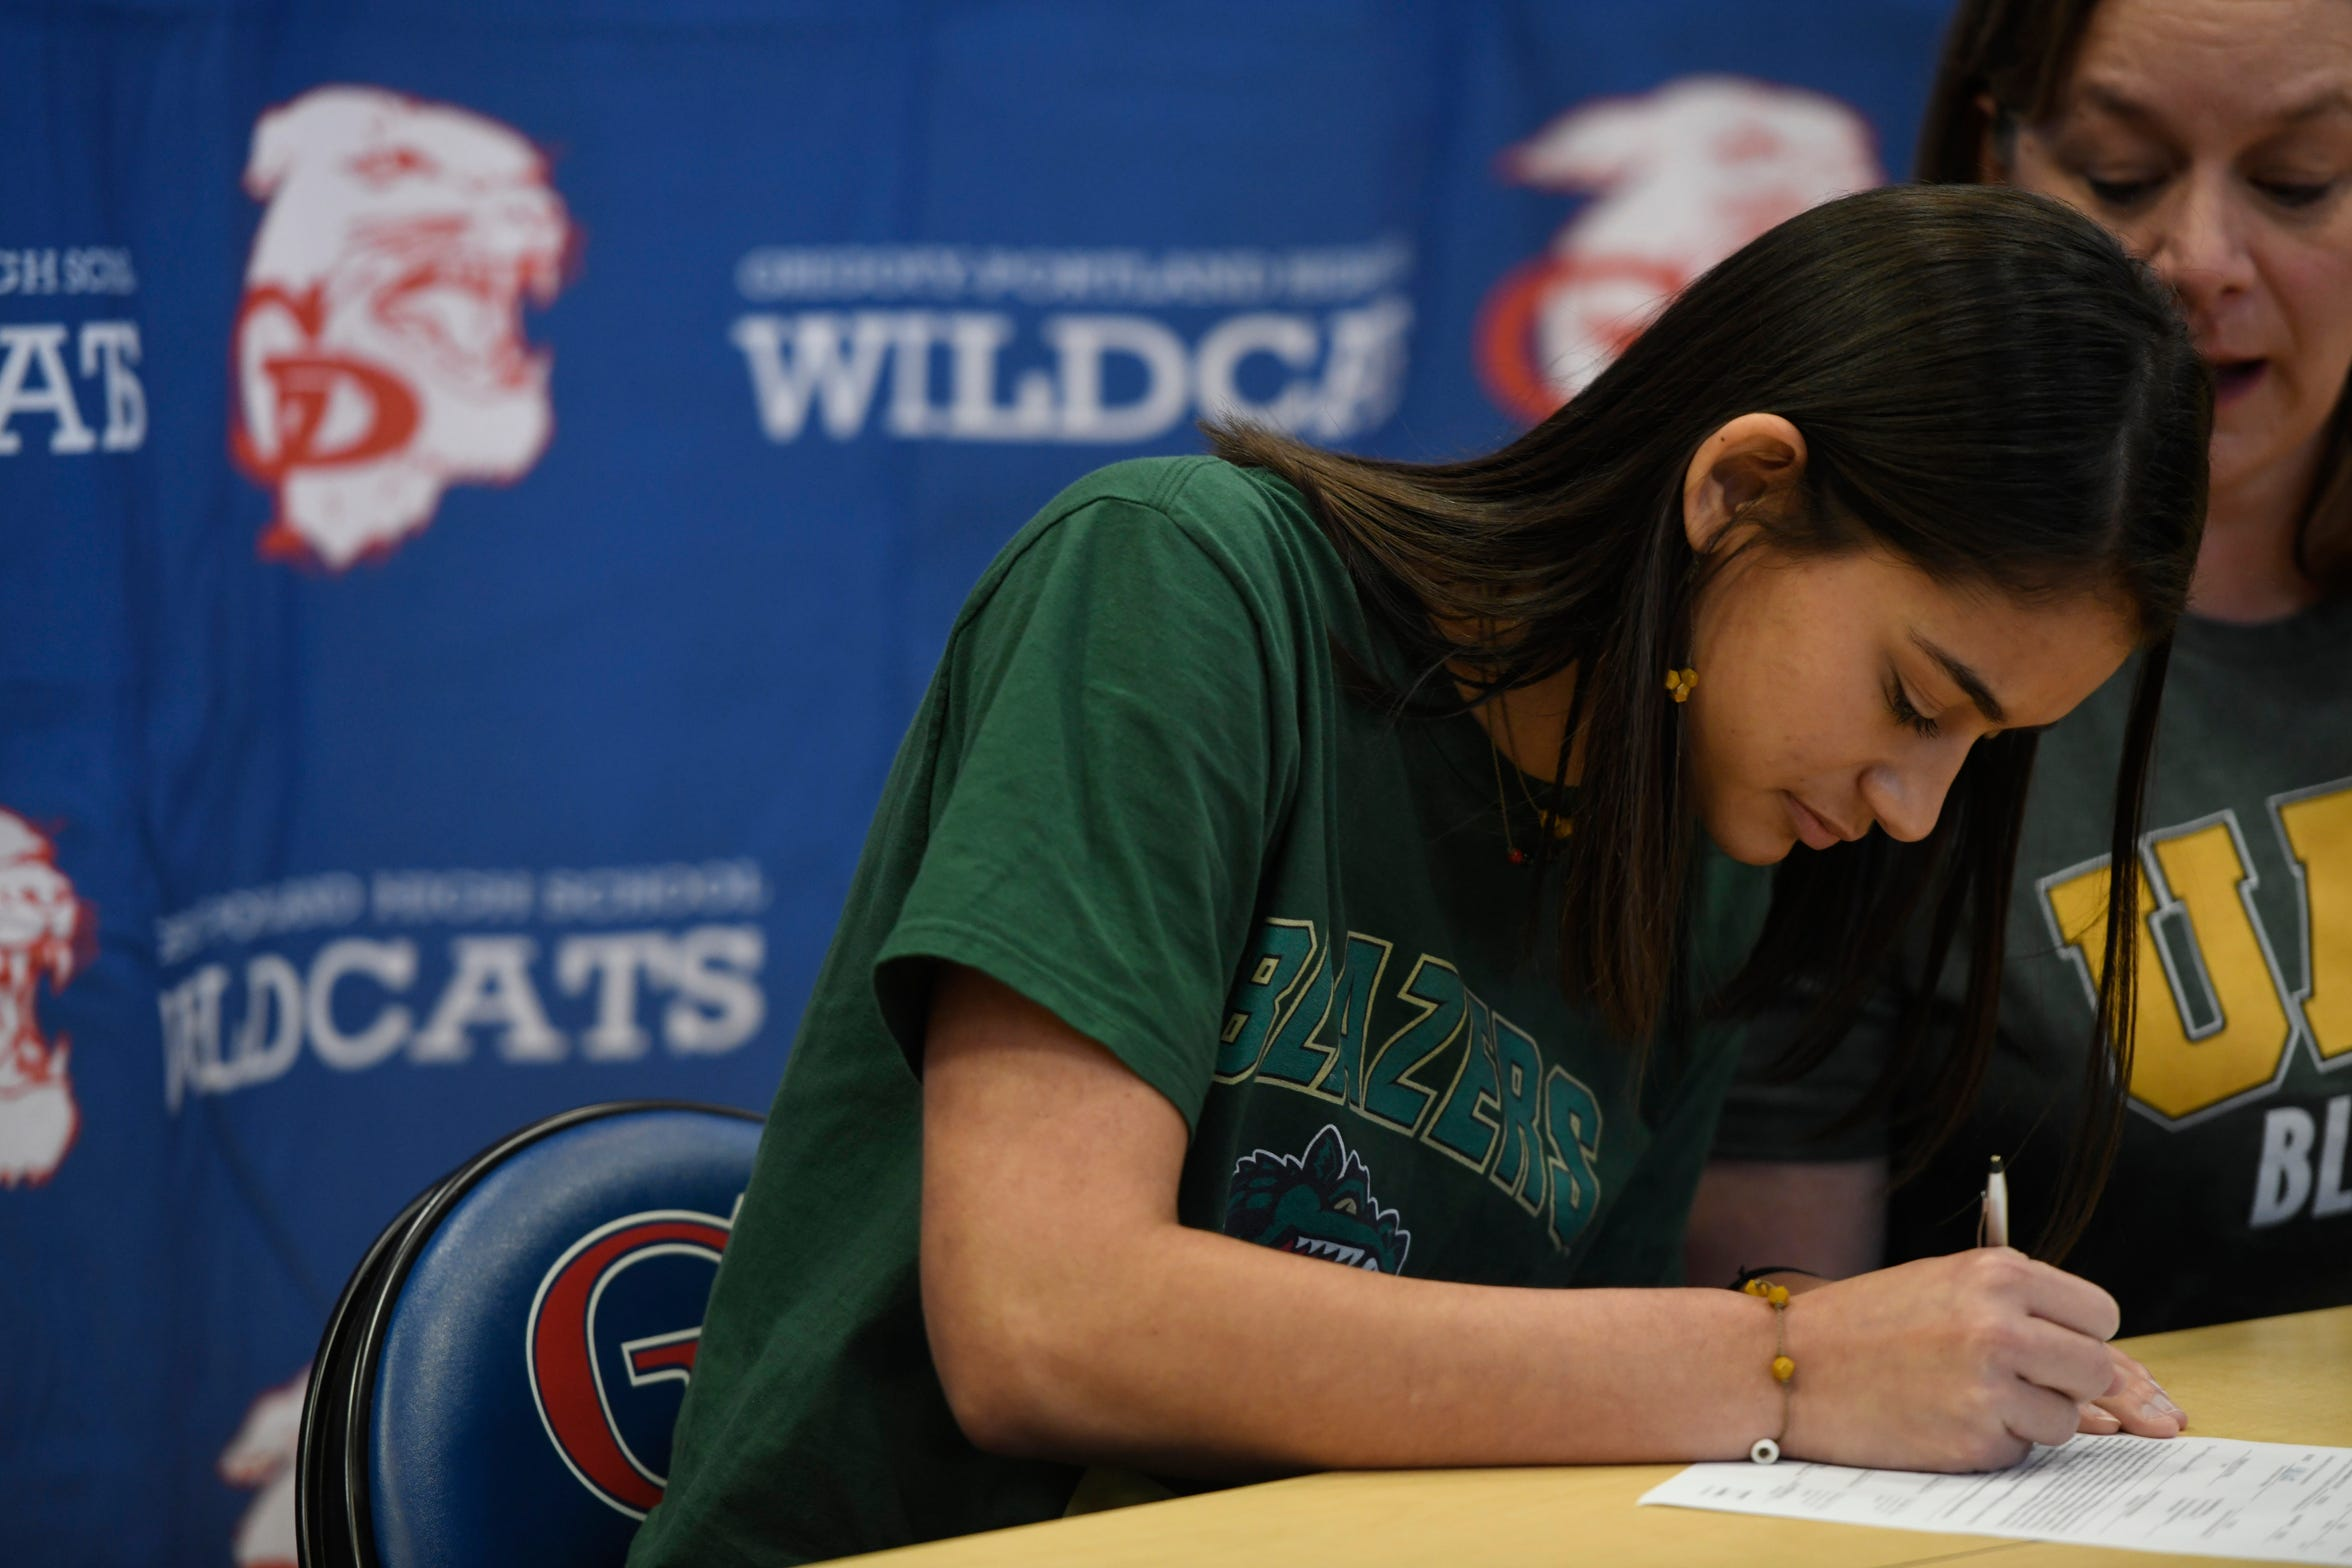 Chloe Rodriguez signs her letter with the University of Alabama at Birmingham, Wednesday, Nov. 13, 2019, at Gregory-Portland High School. Rodriguez has a career 1,535 kills and a .488 hitting percentage.